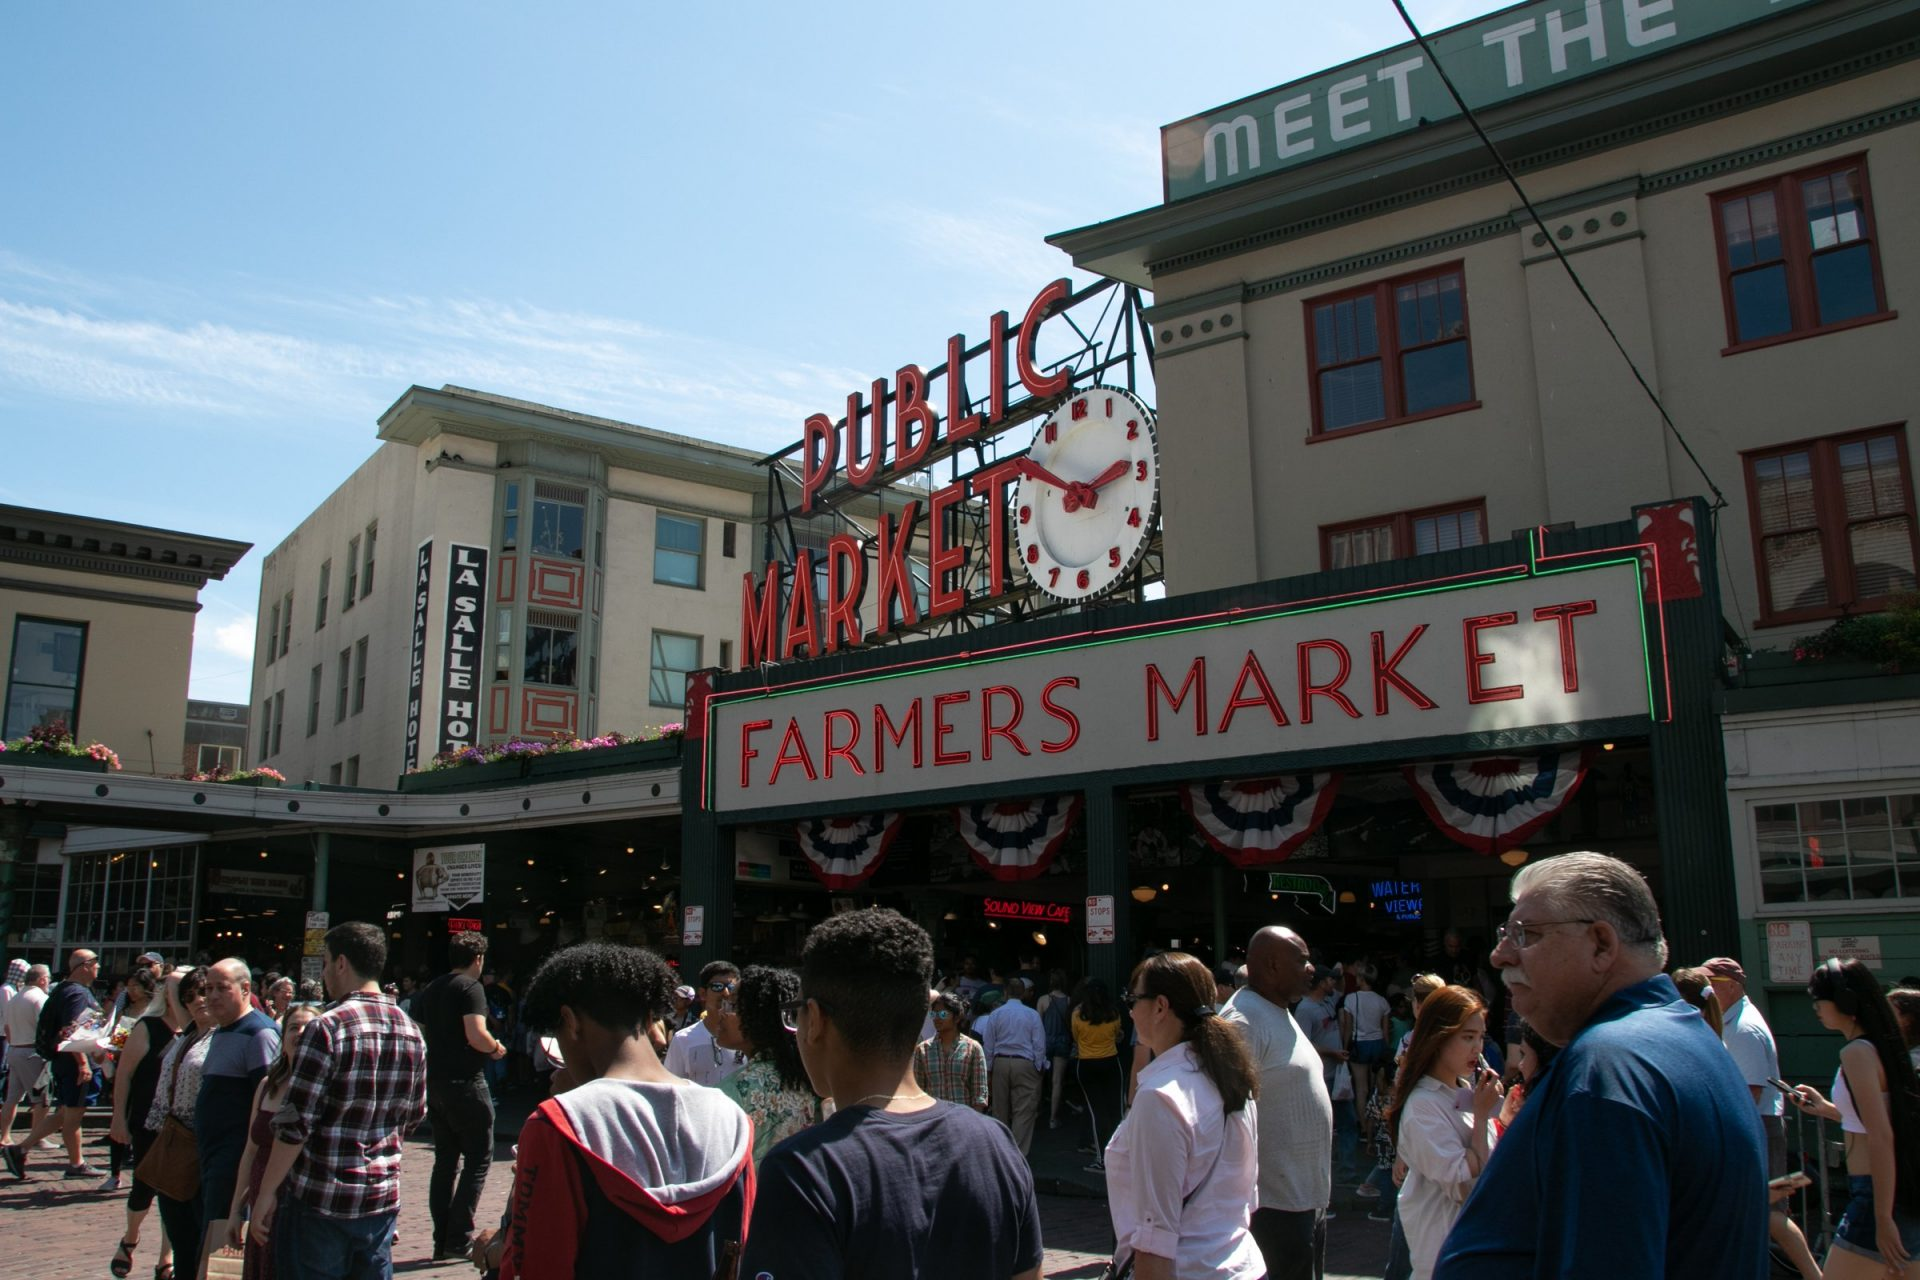 People Strolling Through Pike Place Market